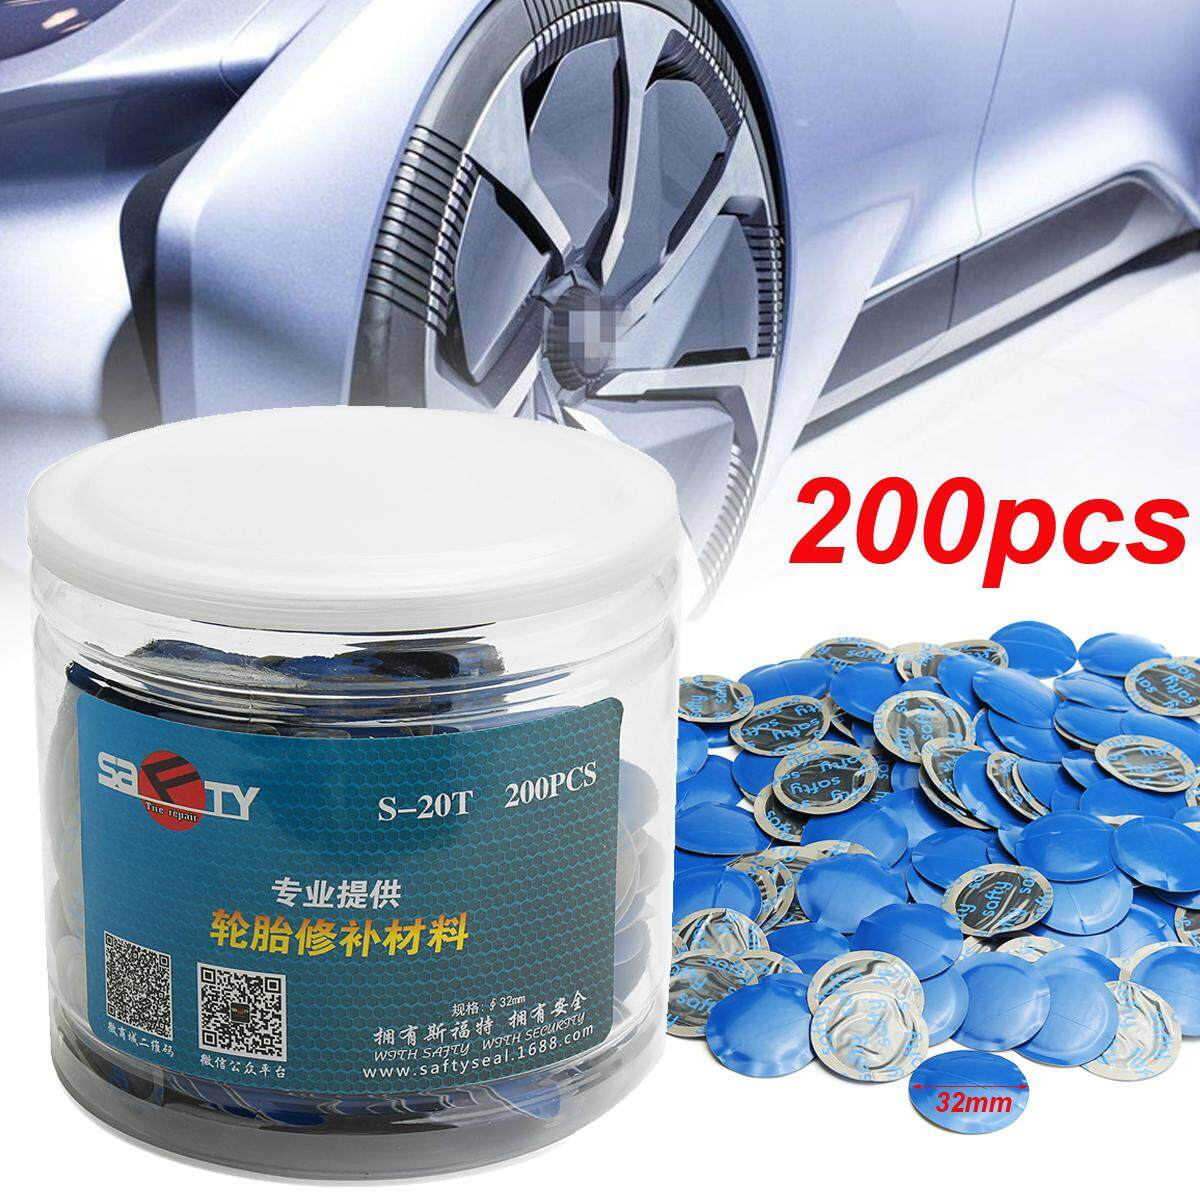 Universal 24pcs 32mm Natural Rubber Wired Tyre Puncture Repair Mushroom Patch By Freebang.